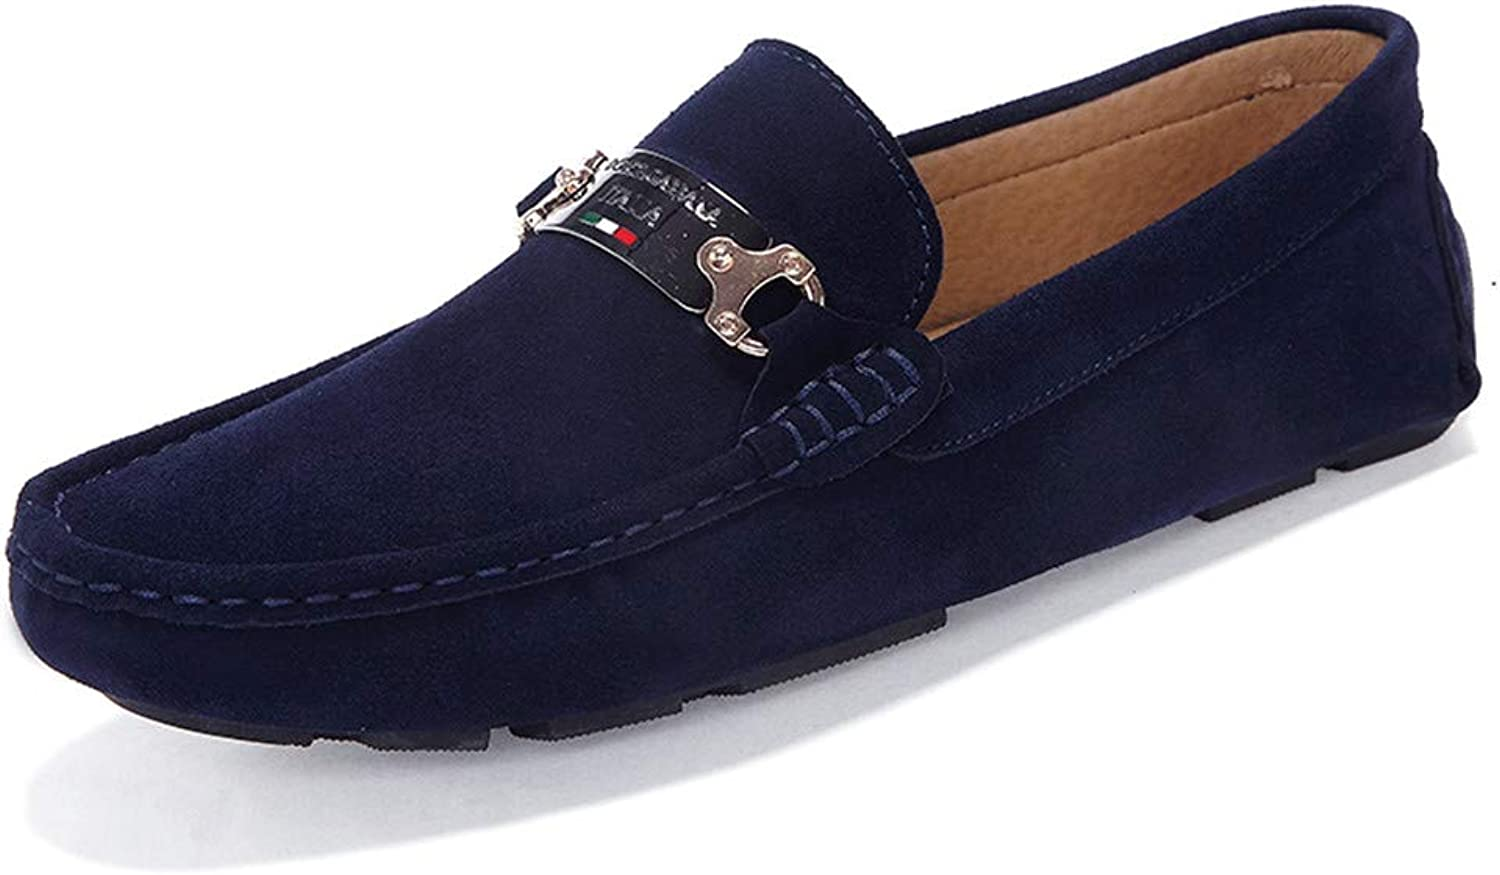 CHENXD shoes, Men's Fashion Genuine Leather Confortable Driving Loafer Suede Vamp Slip on Moccasins Outdoor Leisure shoes